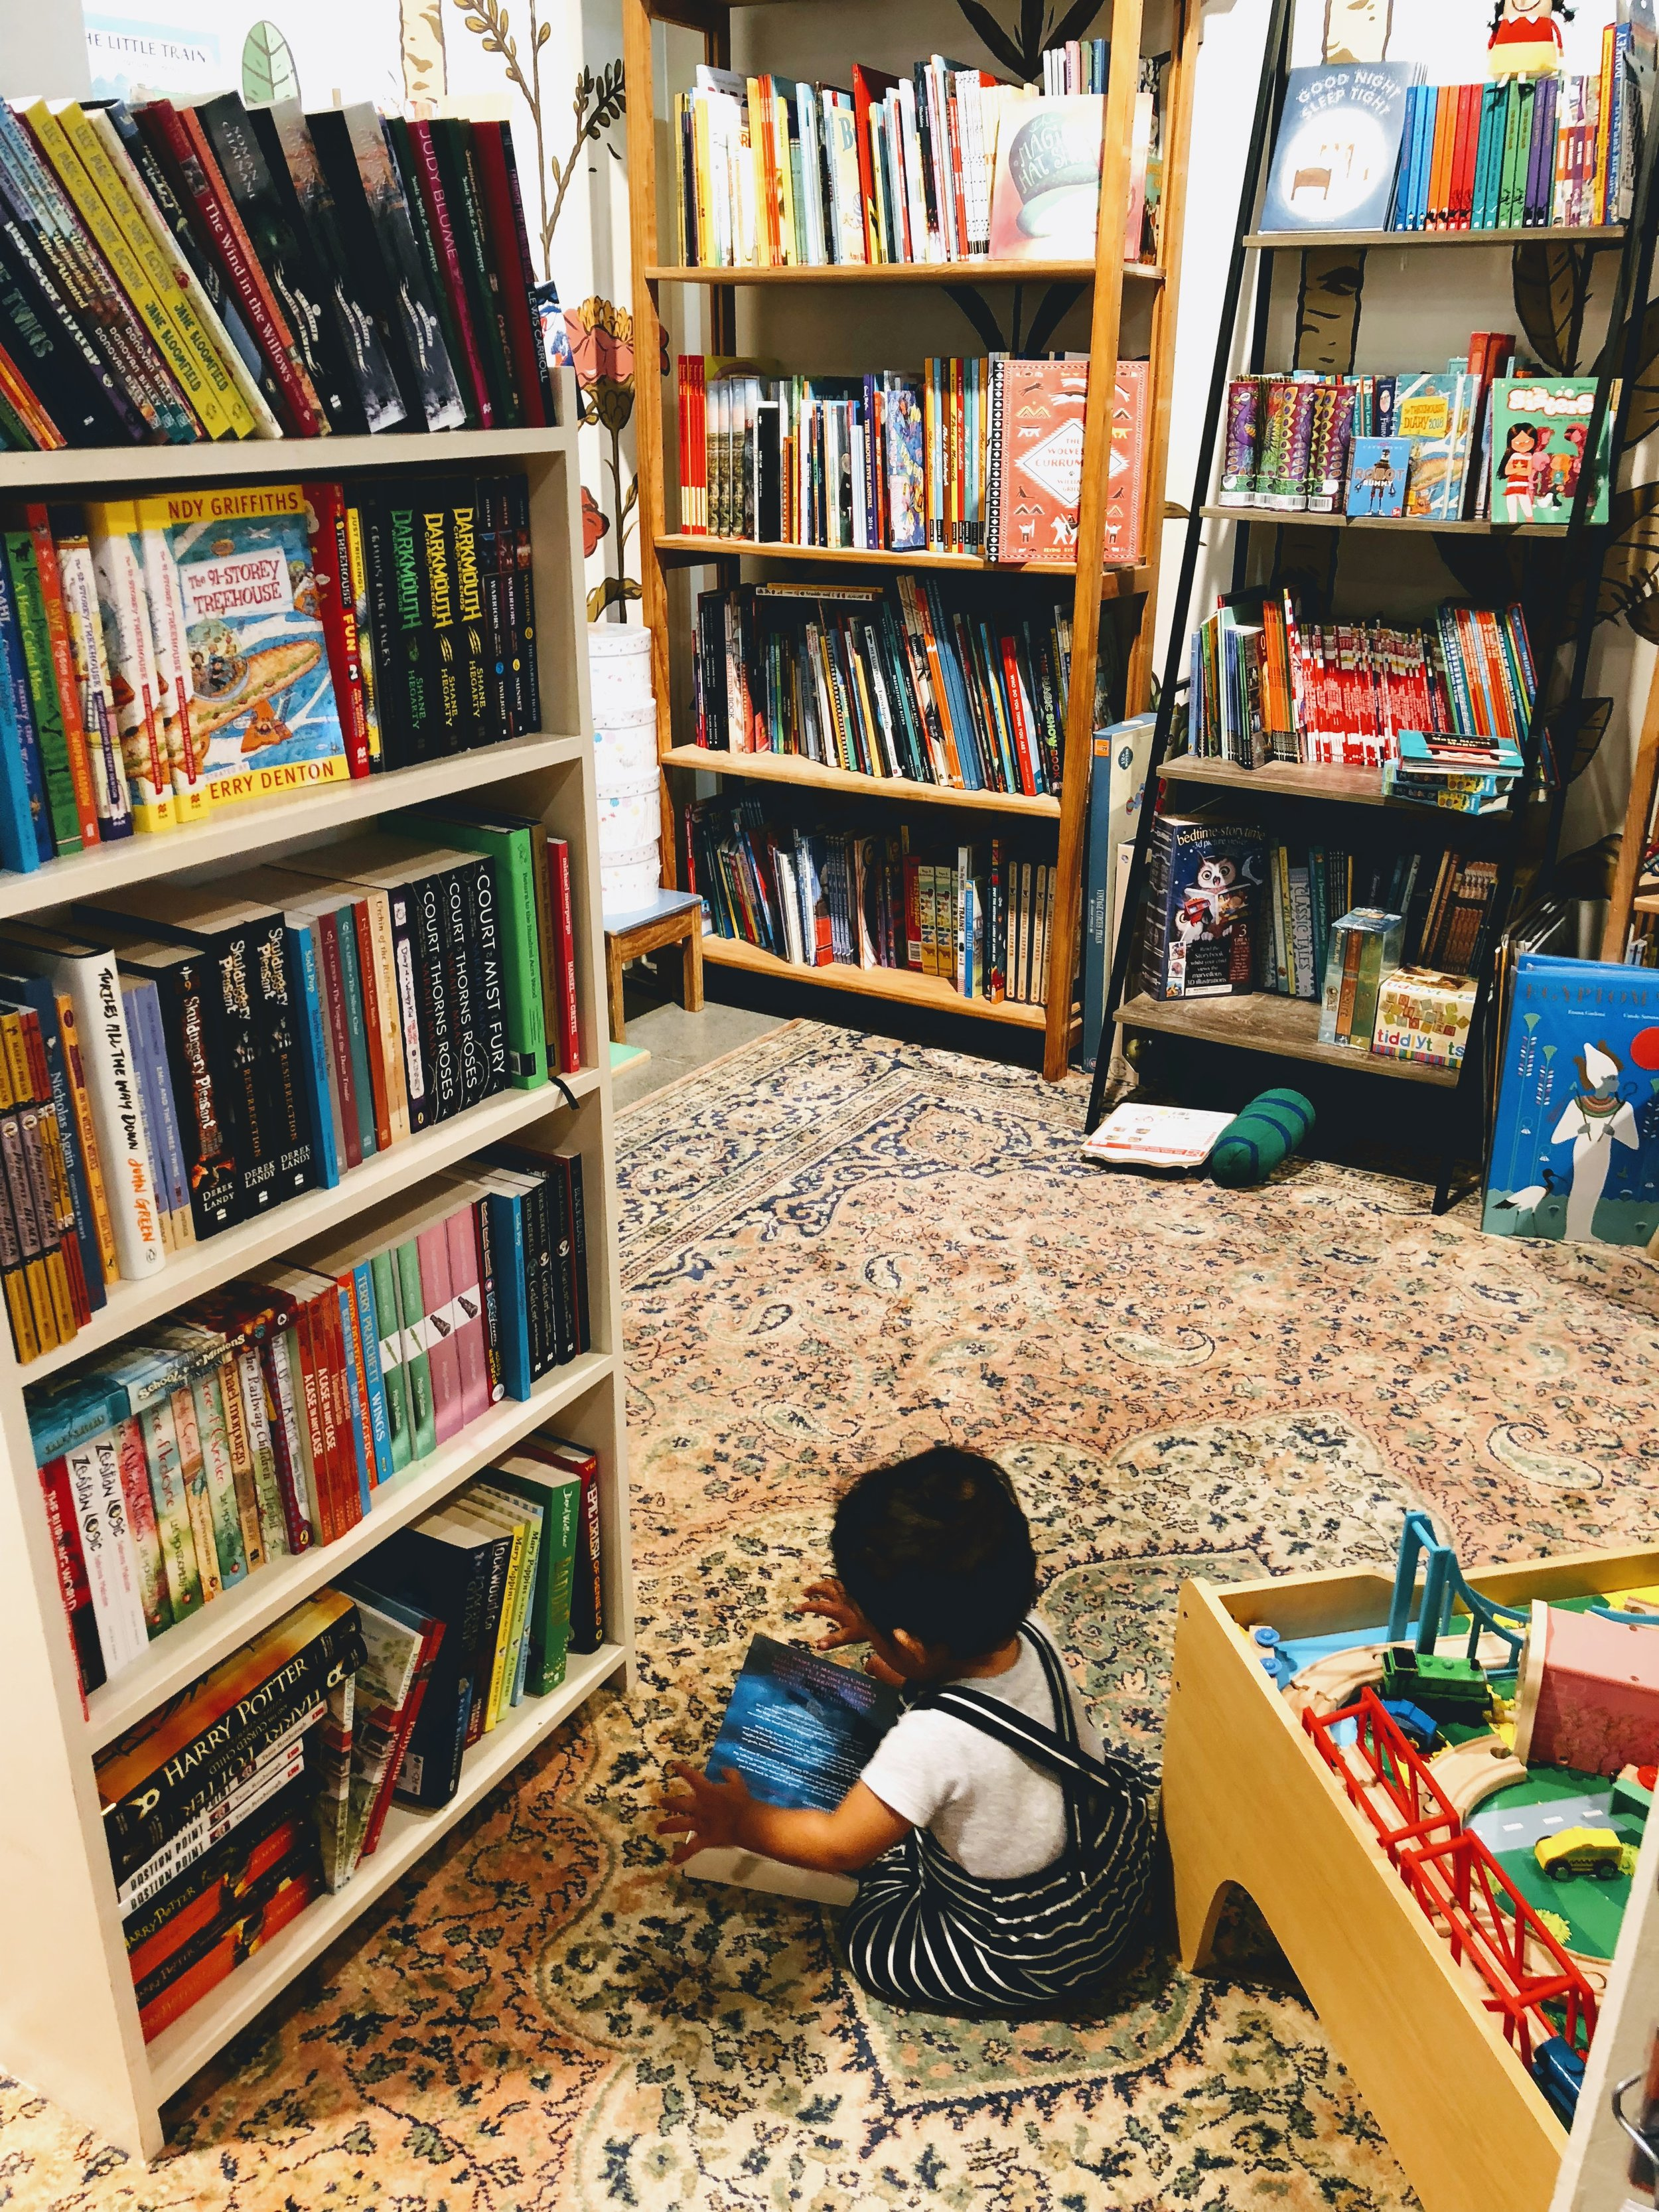 I highly recommend Ekor Books for kid-friendliness, cute toys, and great books.